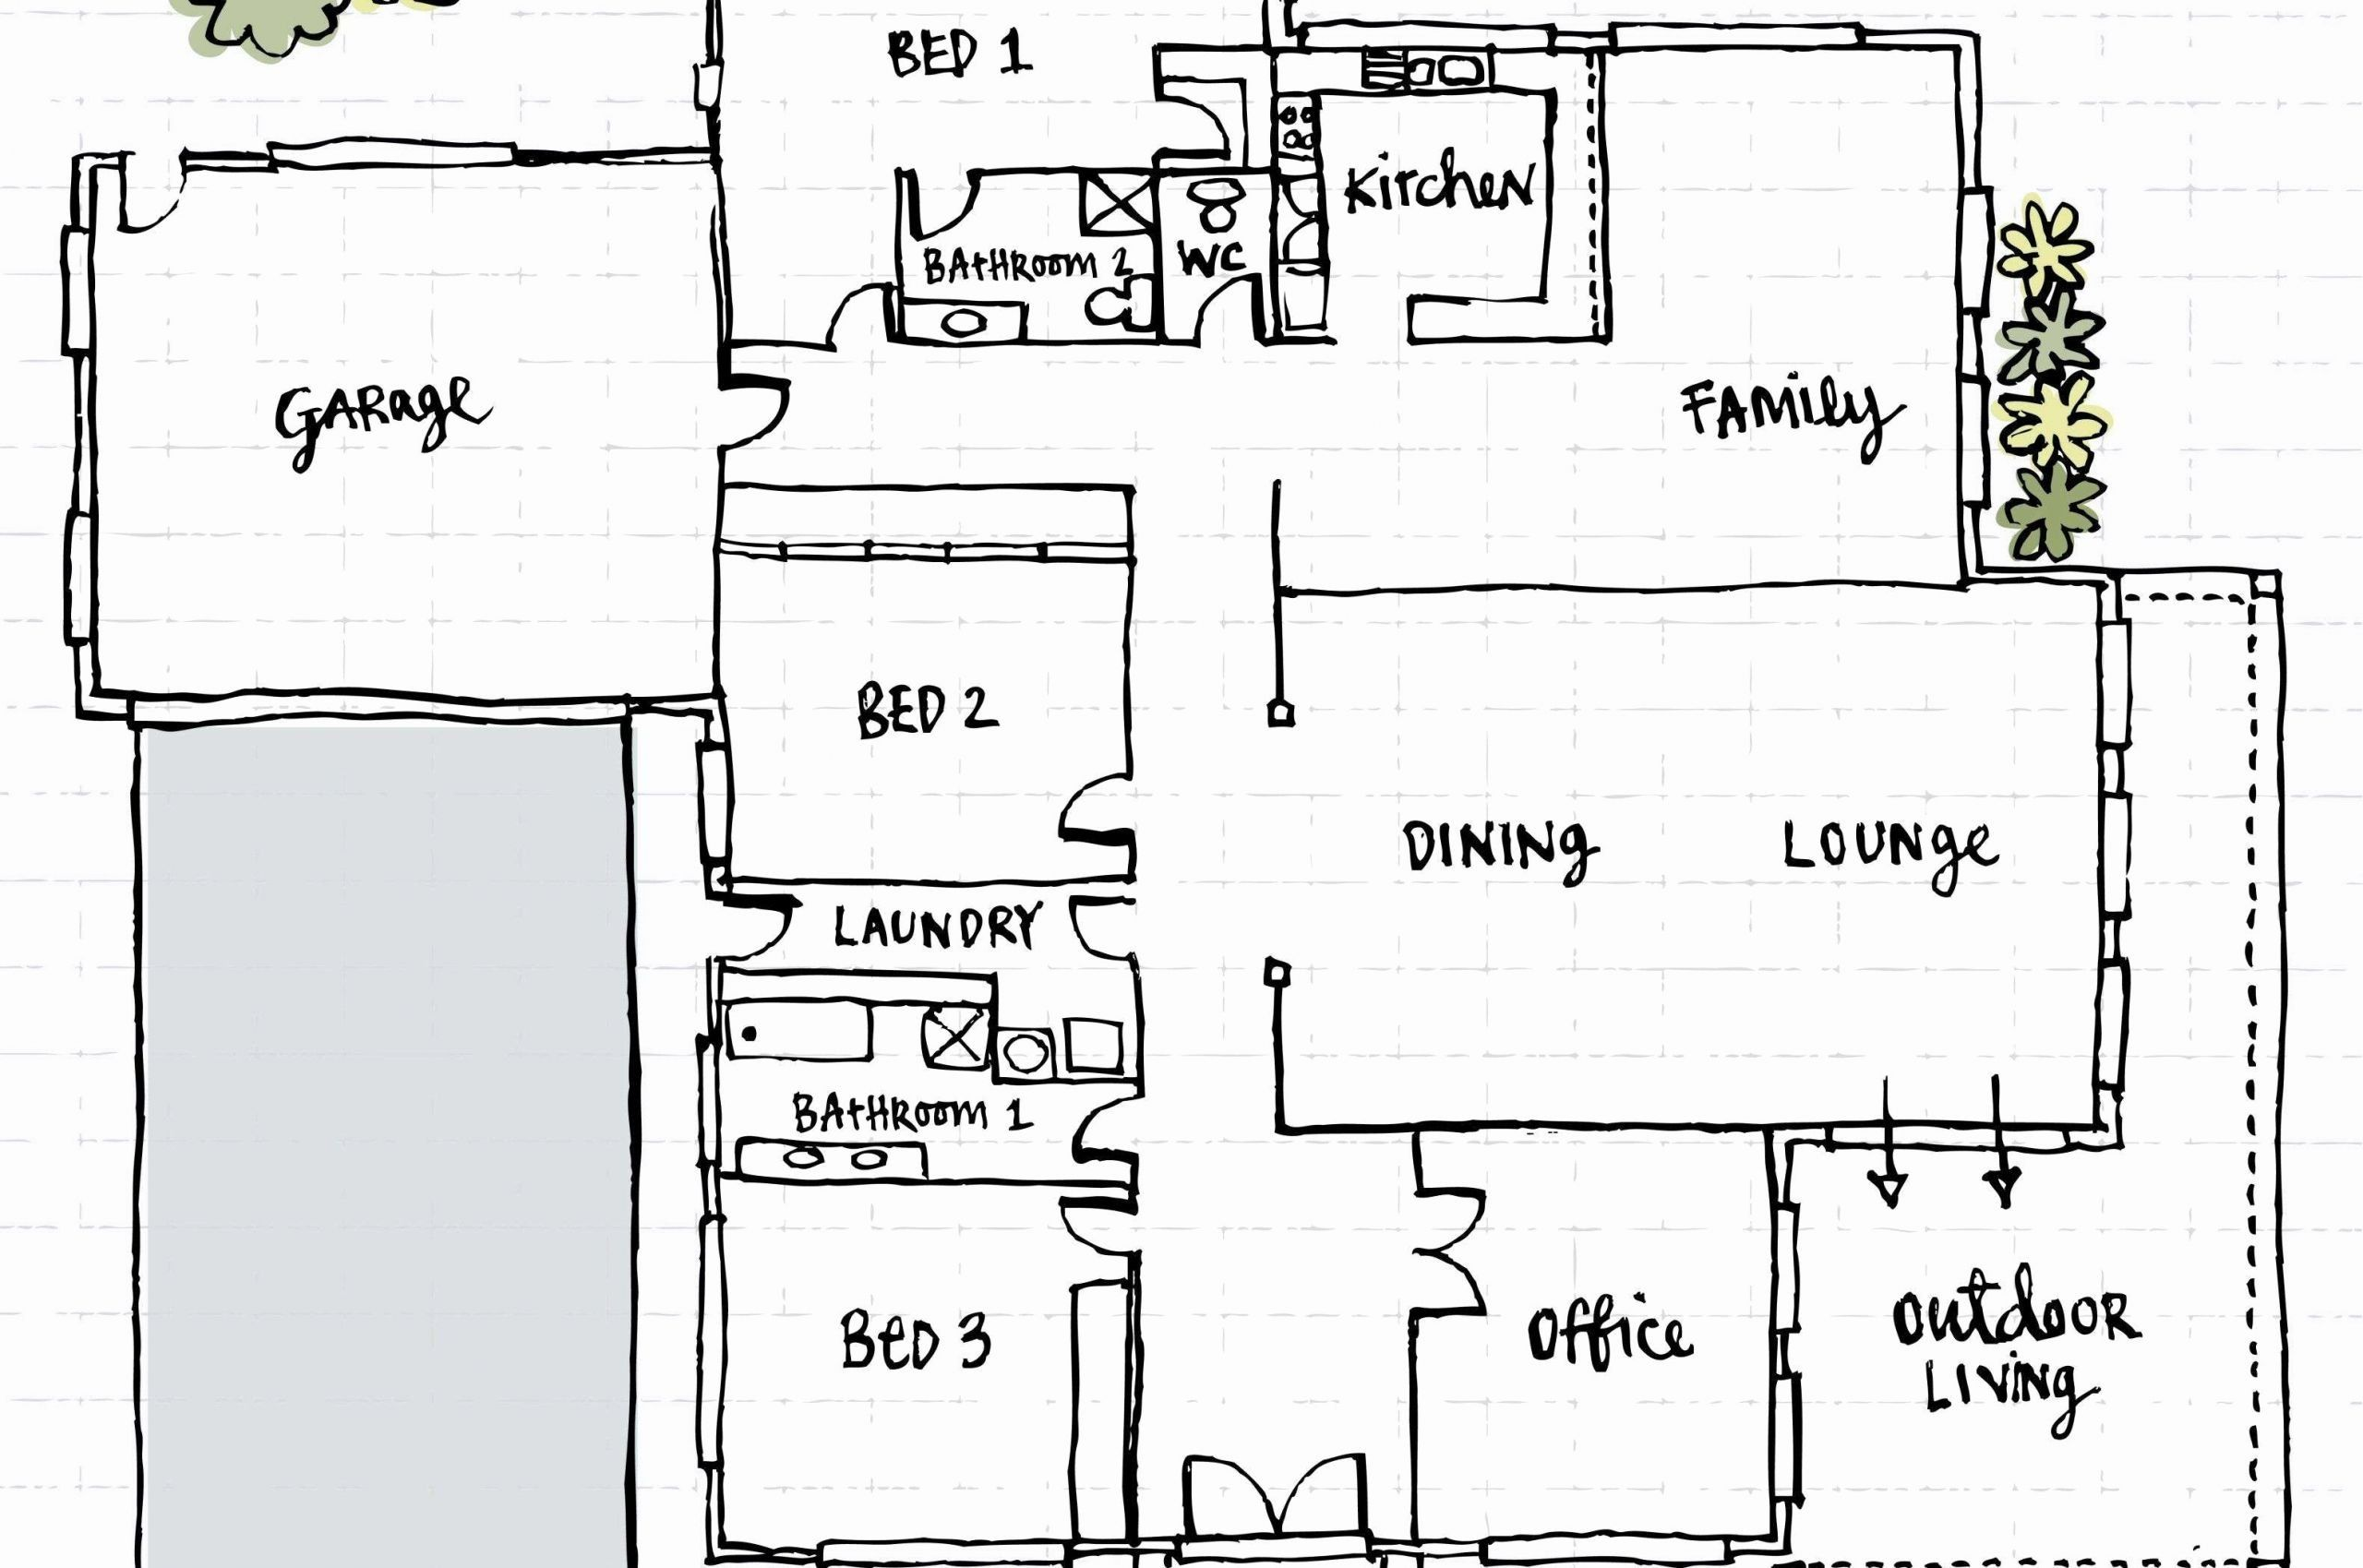 20 X 36 House Plans Awesome 20 X 60 House Plans New 36 X 36 House Plans New 35 60 In 2020 Courtyard House Plans Floor Plan Design Shop House Plans